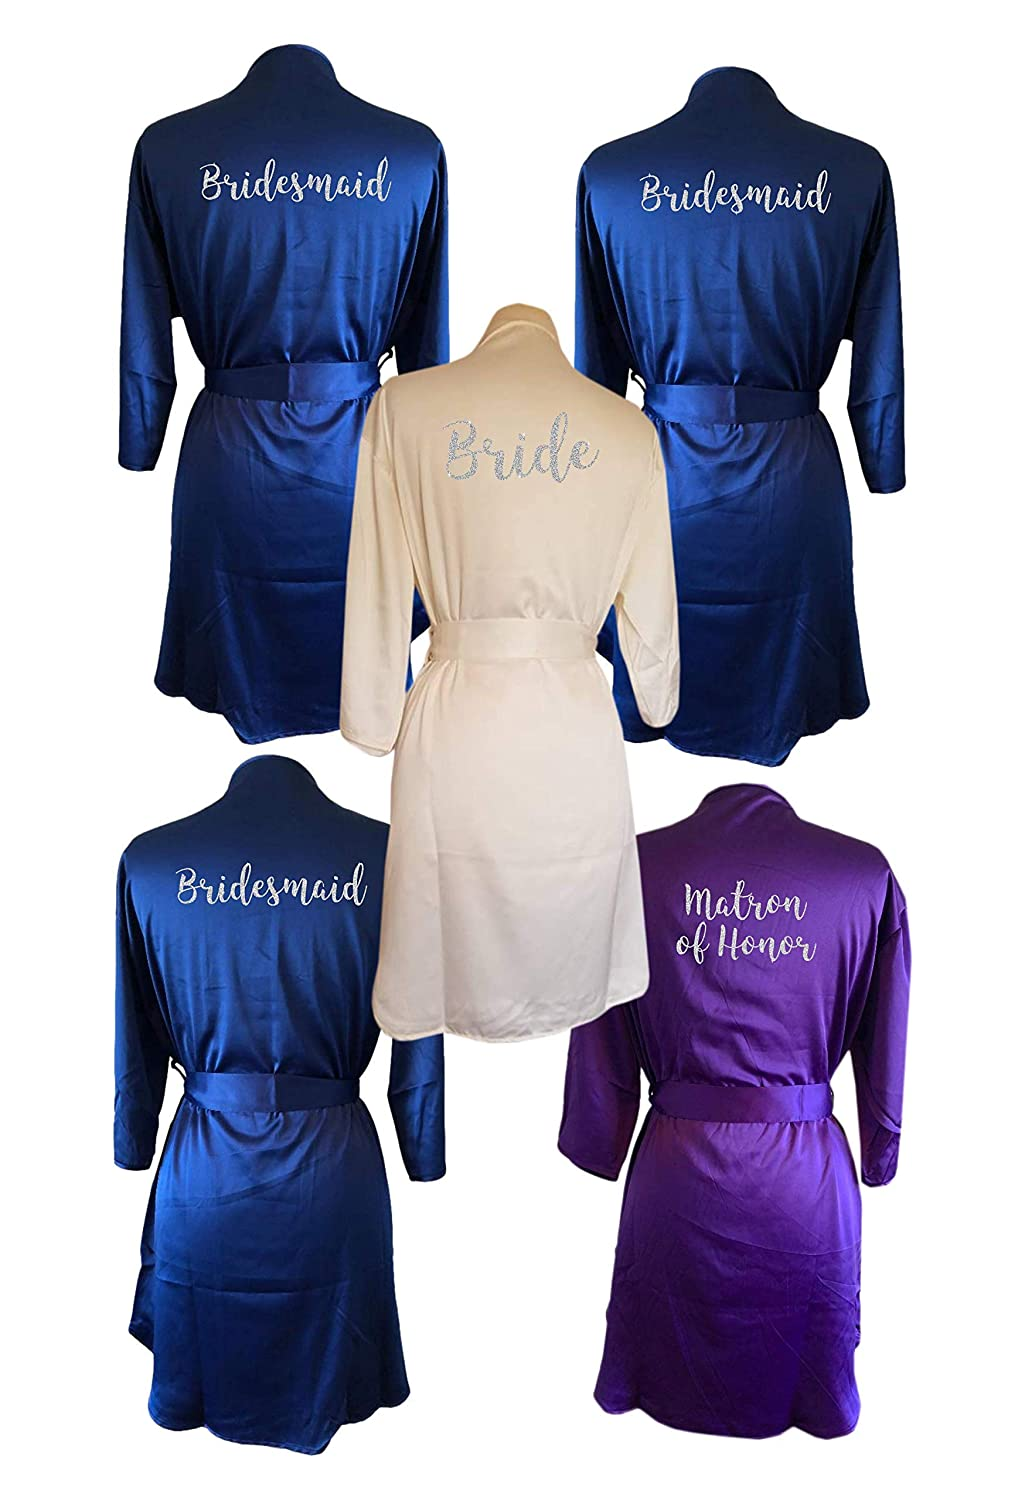 Custom Bridal Party Robes King font Personalized wedding robes